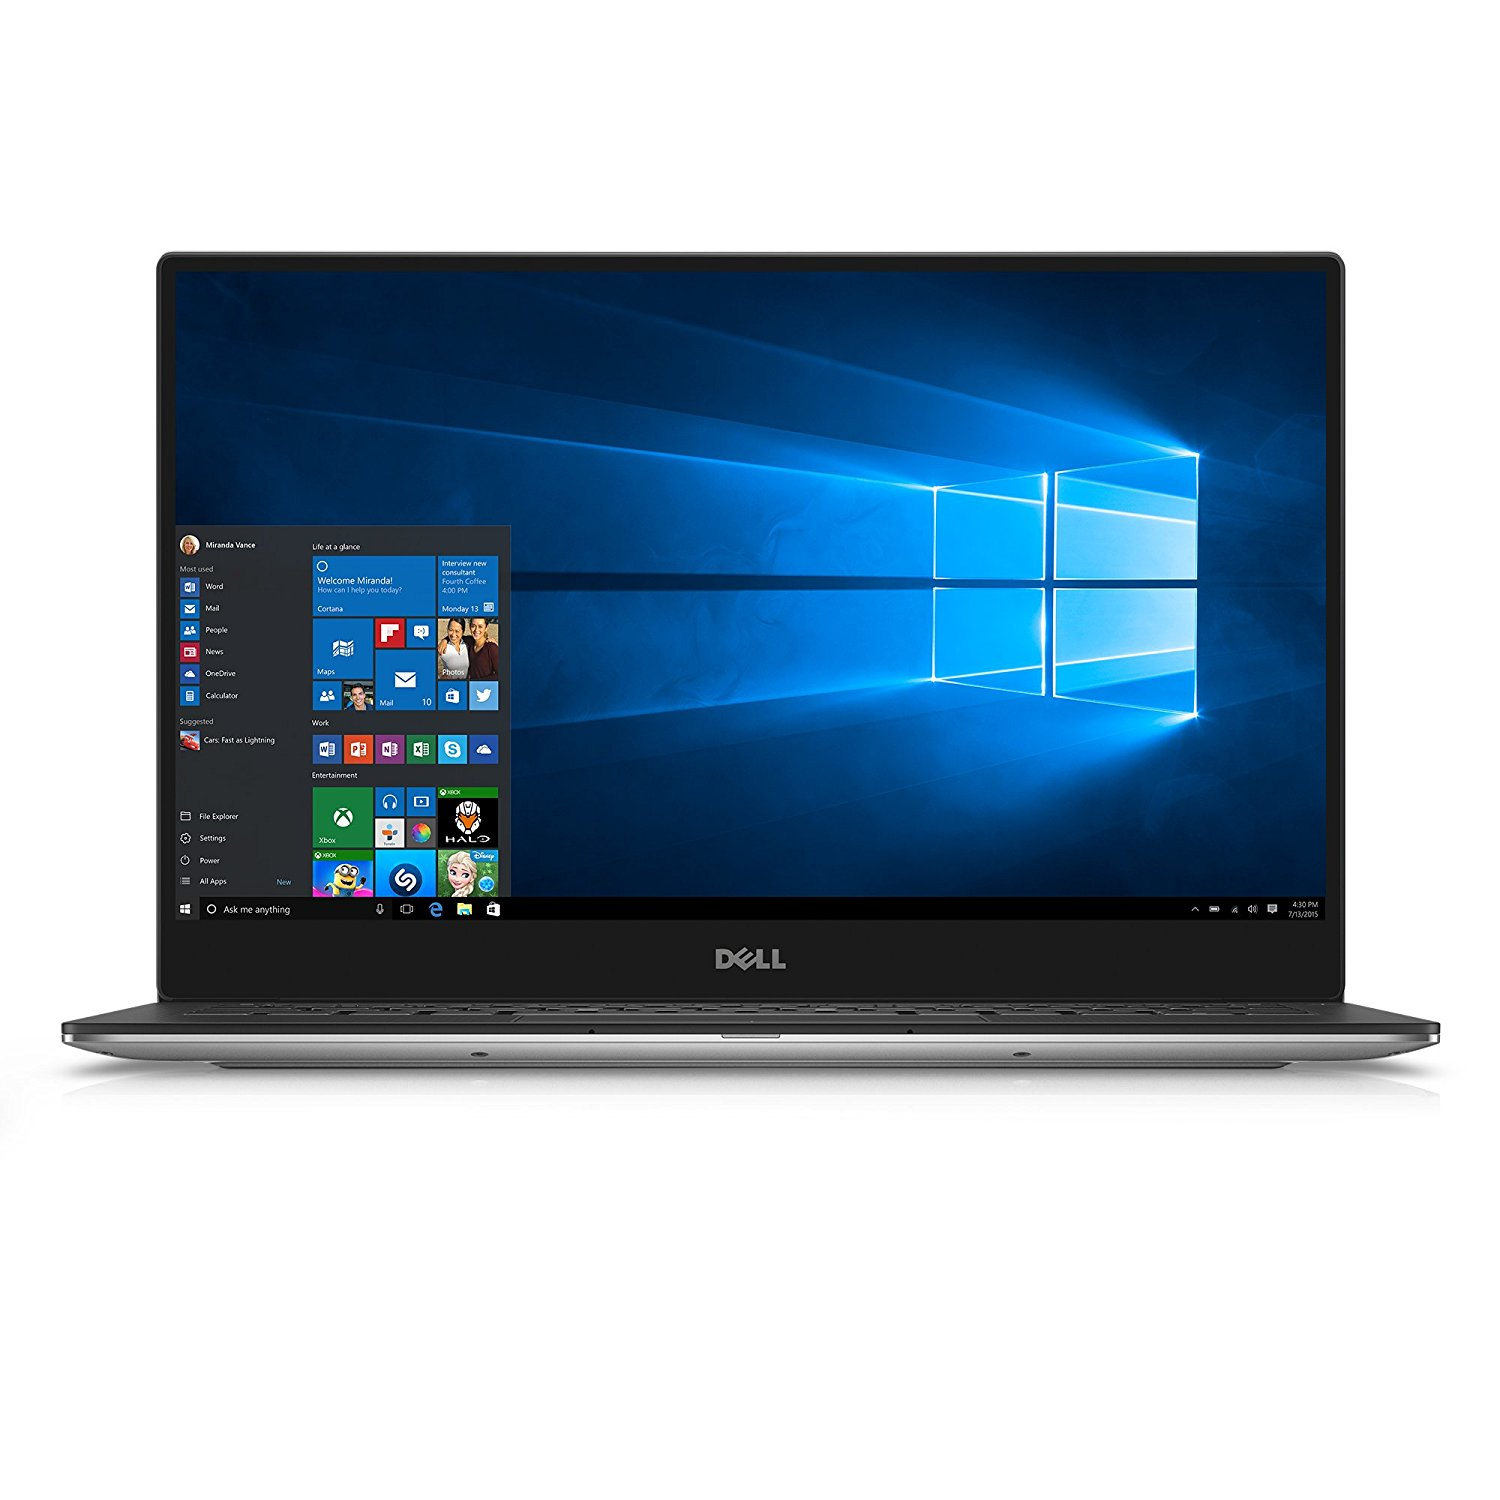 DELL Recertified XPS 13- 9360 13.3-Inch QHD InfinityEdge Touchscreen (Intel Core i7 7560U 3.8 GHz , 16 GB , 512 SSD , Windows 10 Home , 1 Year Dell Warranty